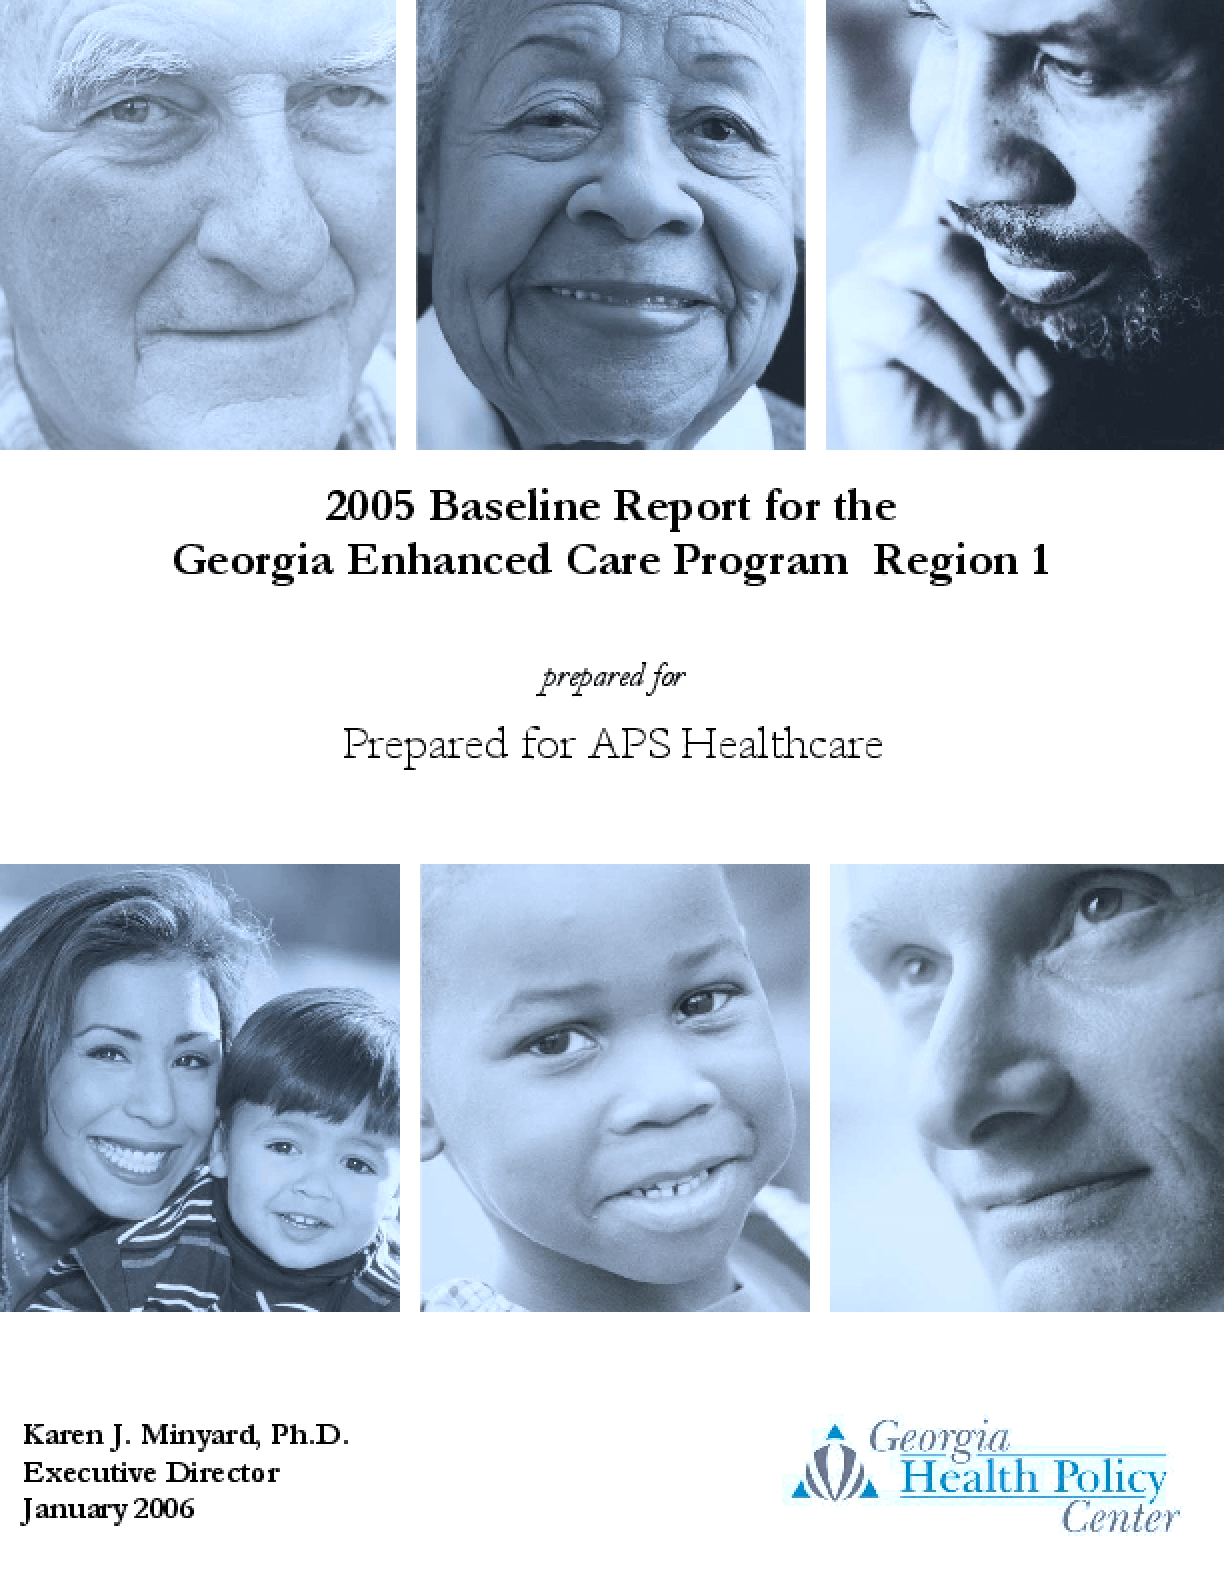 2005 Baseline Report for the Georgia Enhanced Care Program Region 1